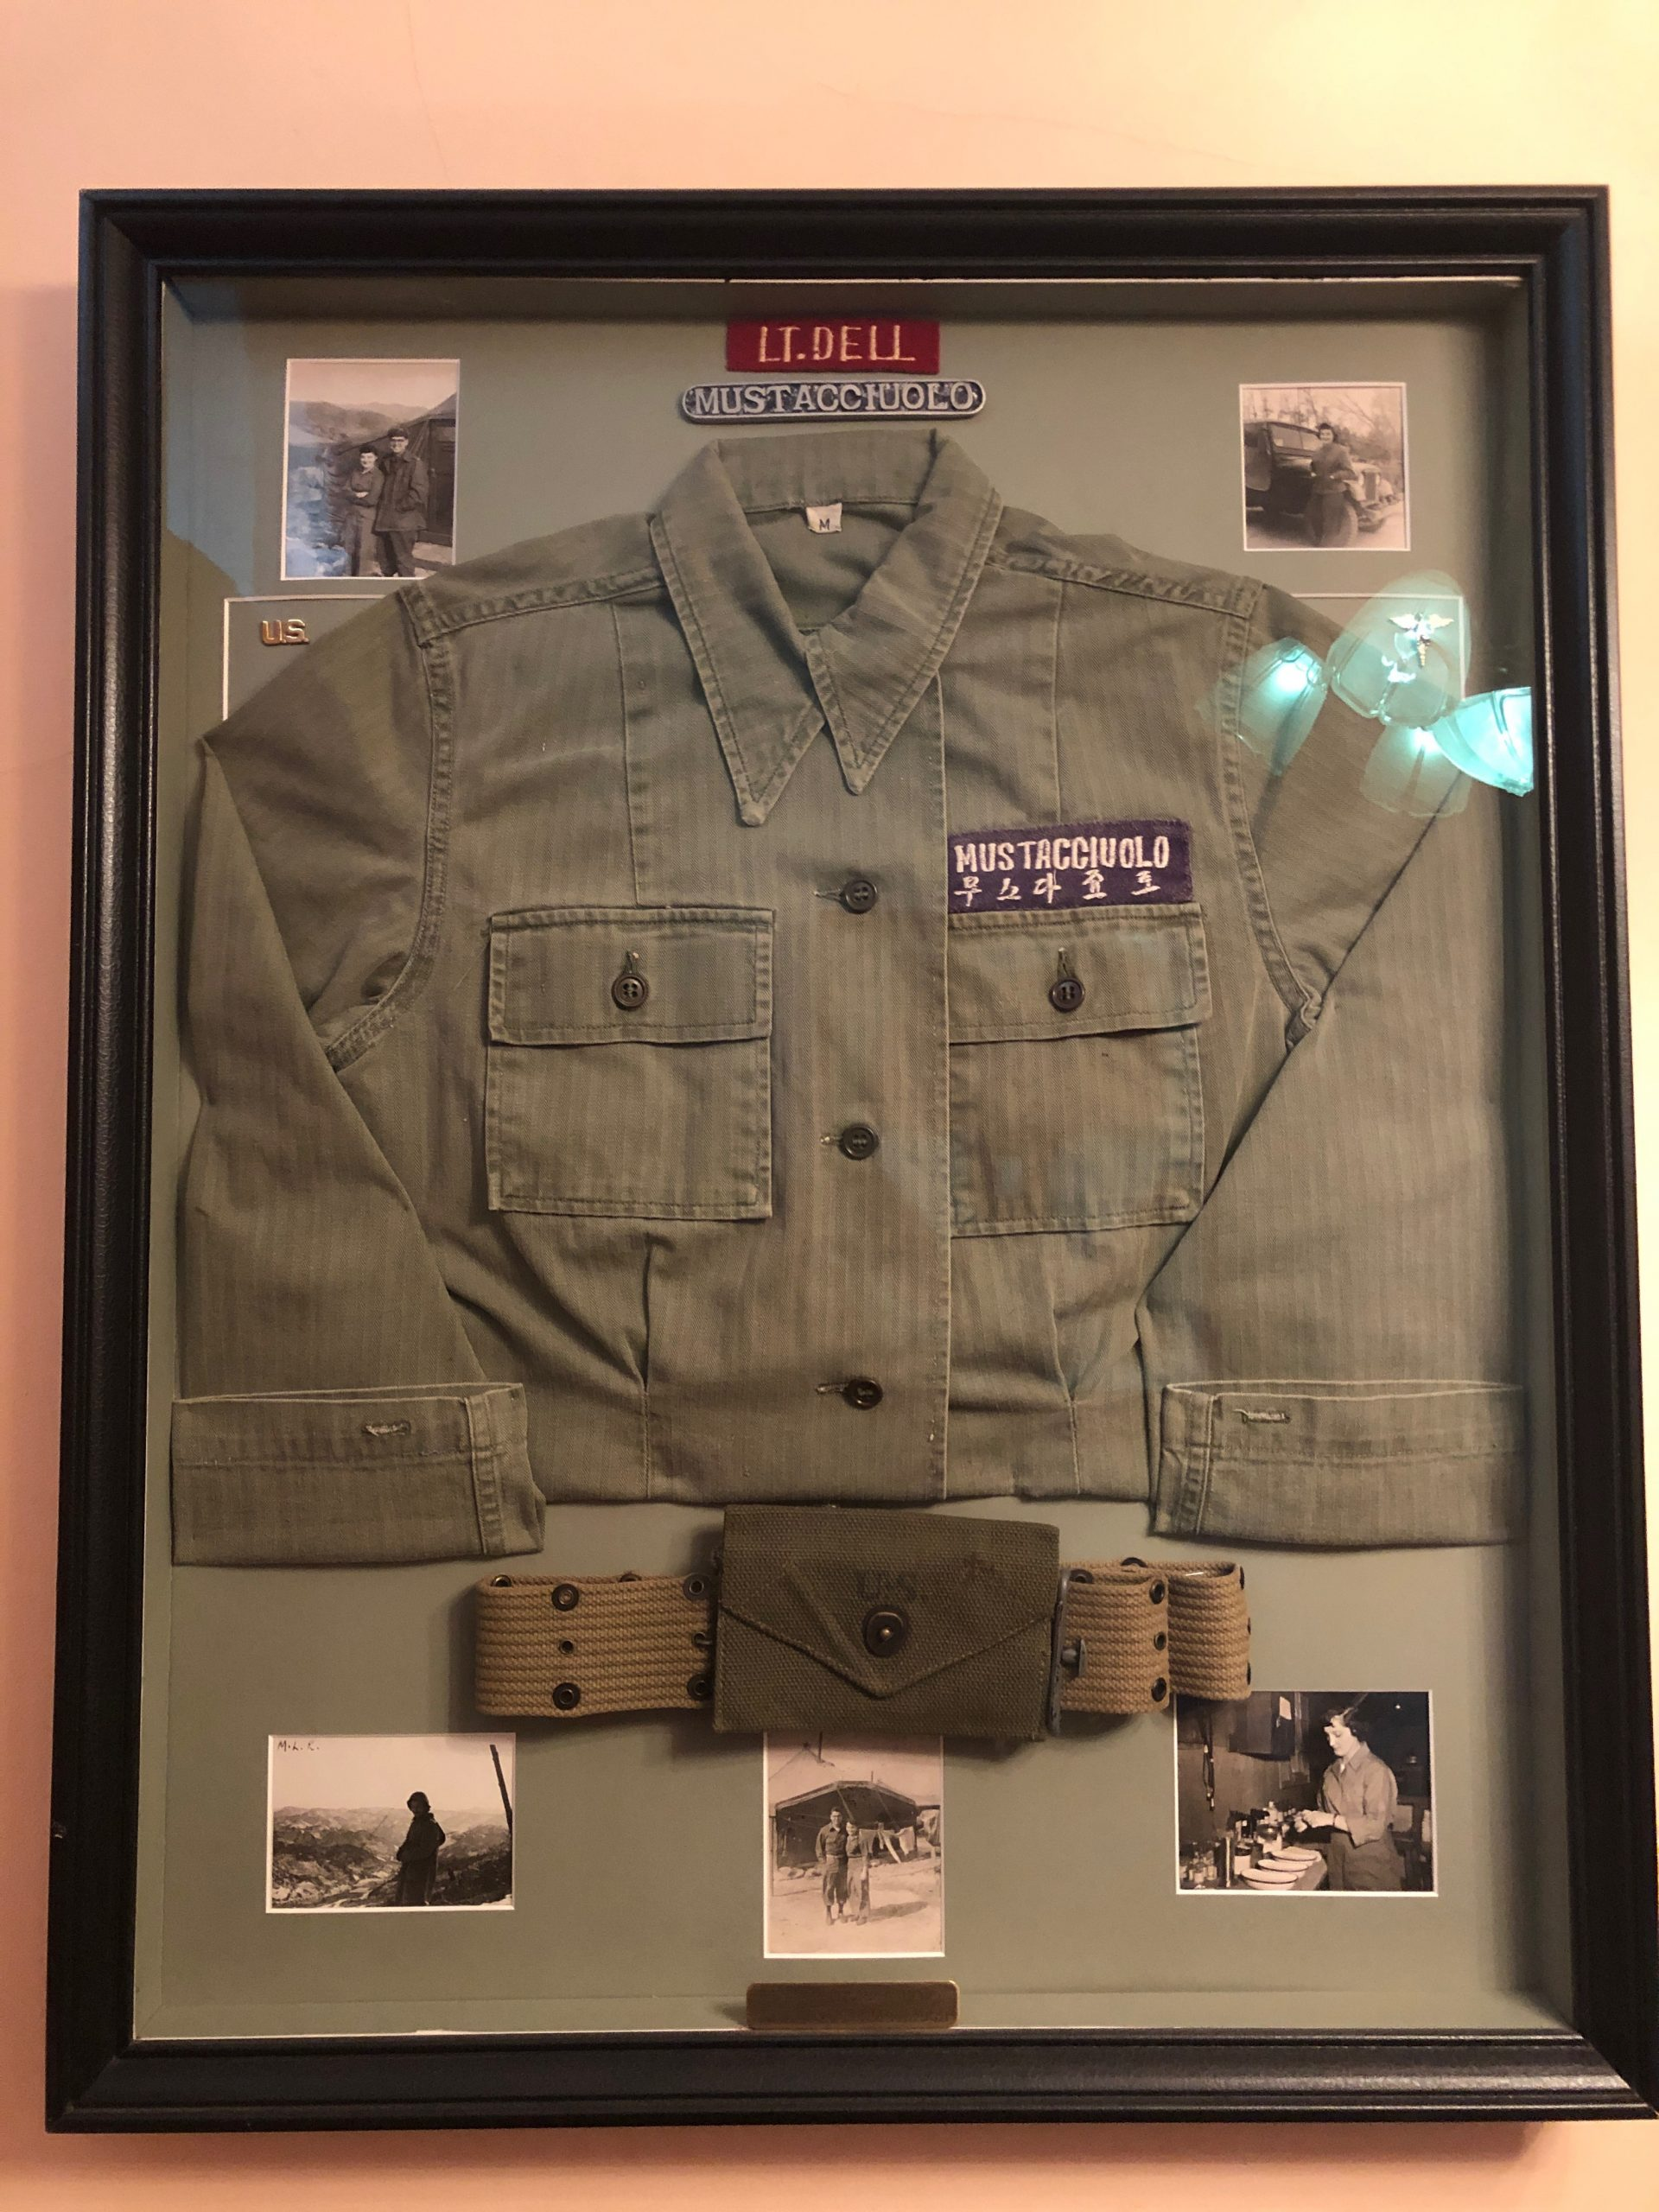 Della's military jacket and photos from her service during the Korean War